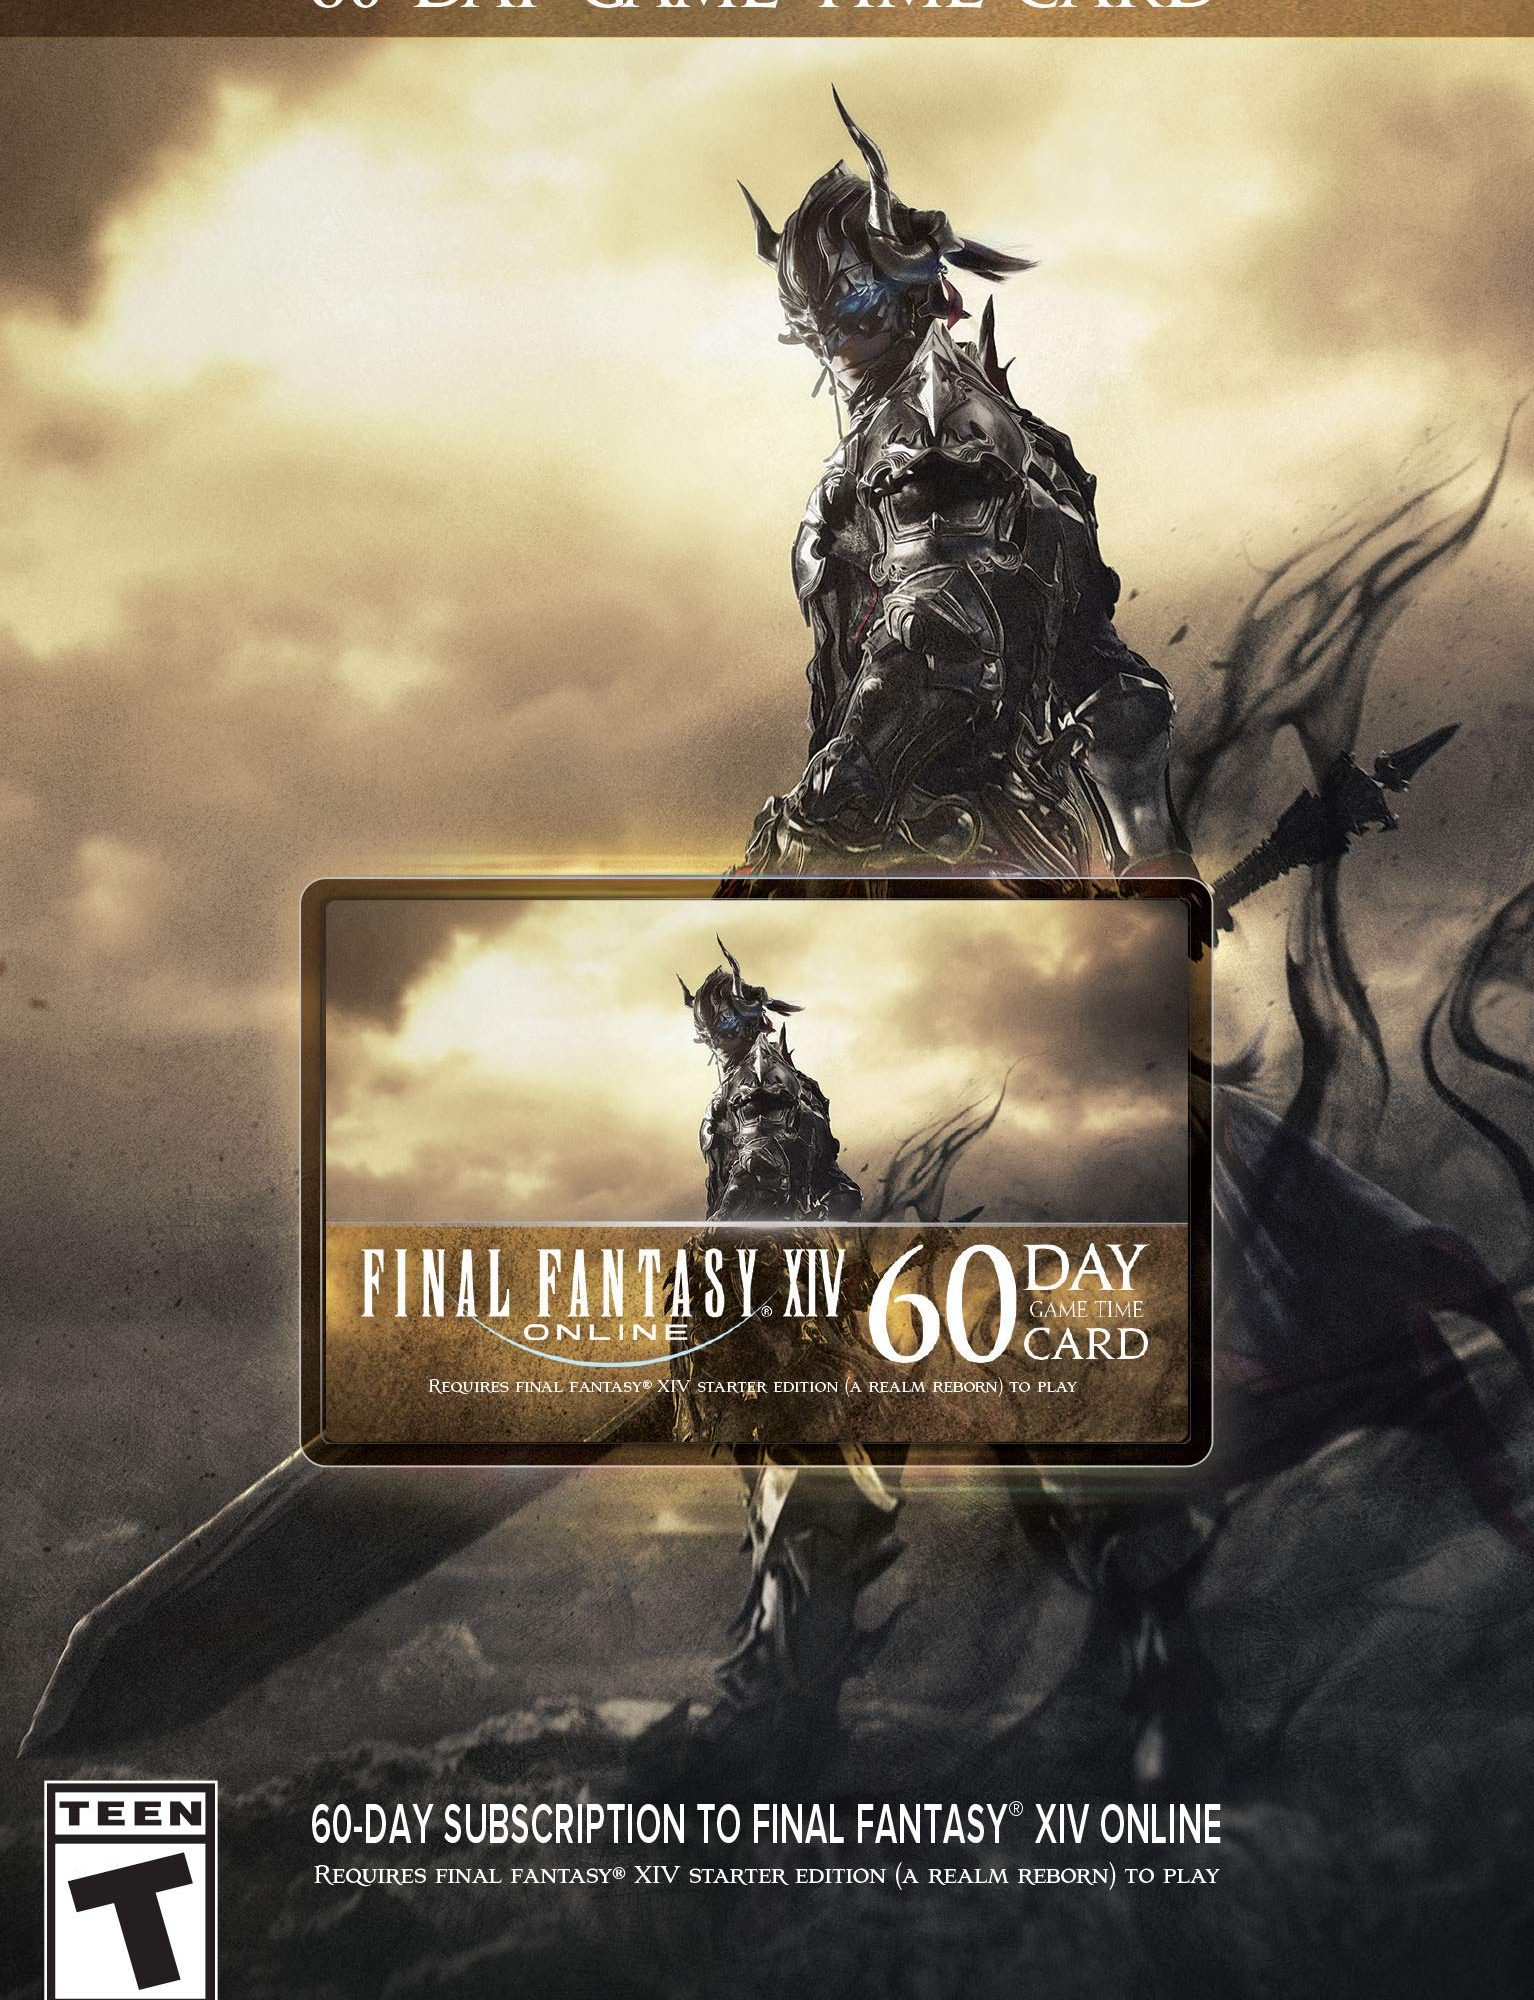 Final Fantasy XIV Online: 60 Day Time Card [Online Game Code] - Email Delivery